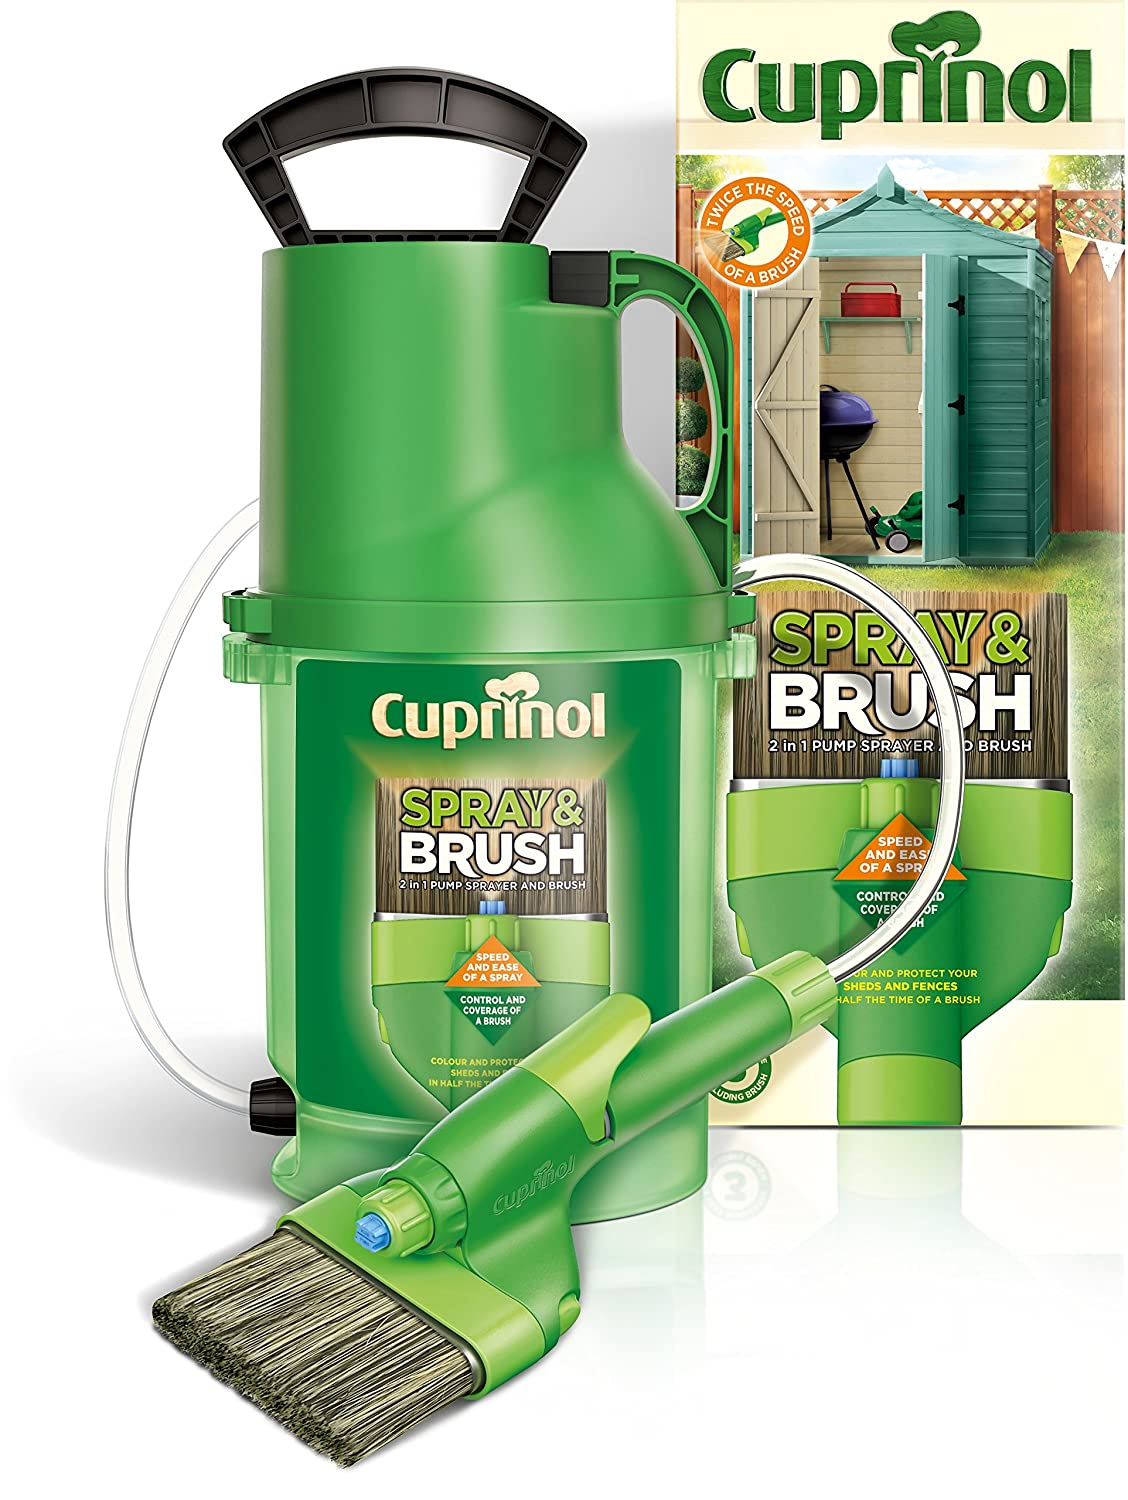 Cuprinol 2-in-1 Shed and Fence Paint Sprayer